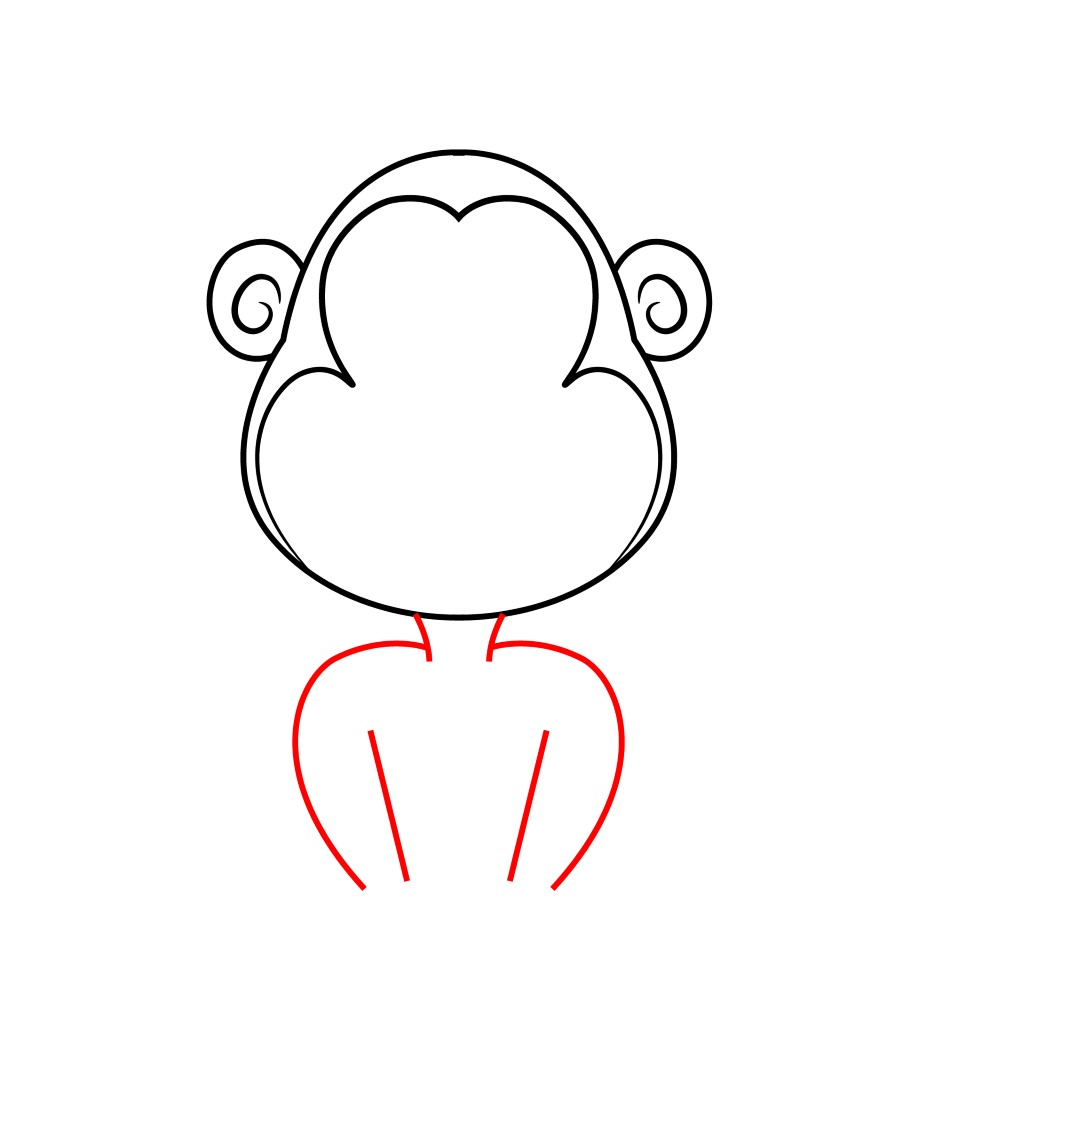 Next, We Need To Outline The Face Of Our Cartoon Monkey Inside The Head,